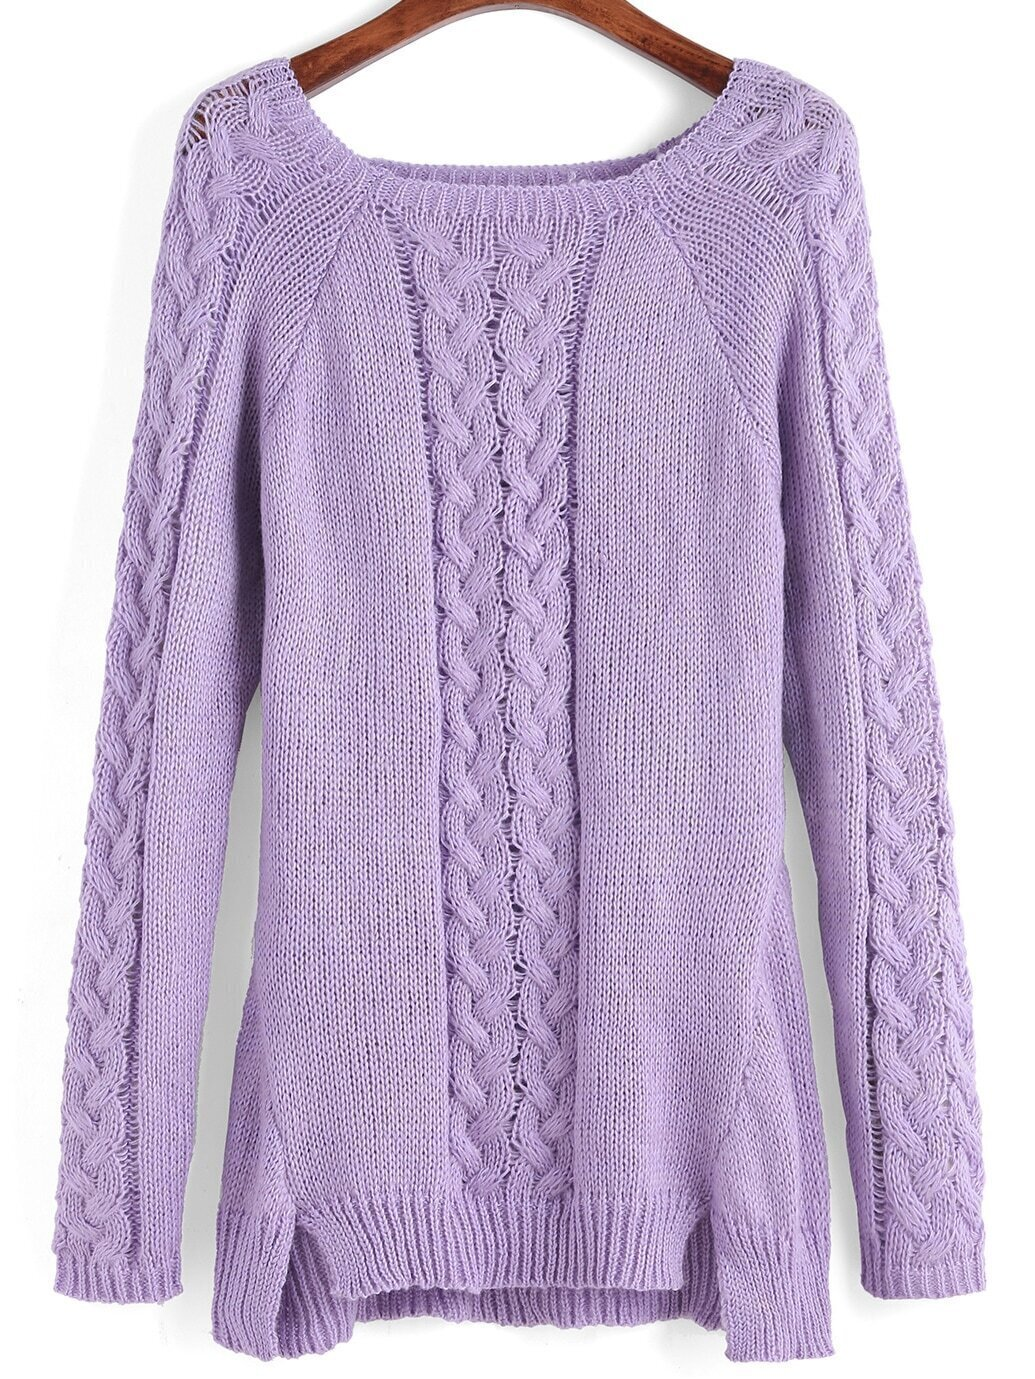 cheswick-stand.tk: purple sweater dress. most trendy knit sweater knee legth dress which can be worn in Rocorose Women's Turtleneck Ribbed Elbow Long Sleeve Knit Sweater Dress. by Rocorose. $ - $ $ 24 $ 33 99 Prime. FREE Shipping on eligible orders. Some sizes/colors are Prime eligible.